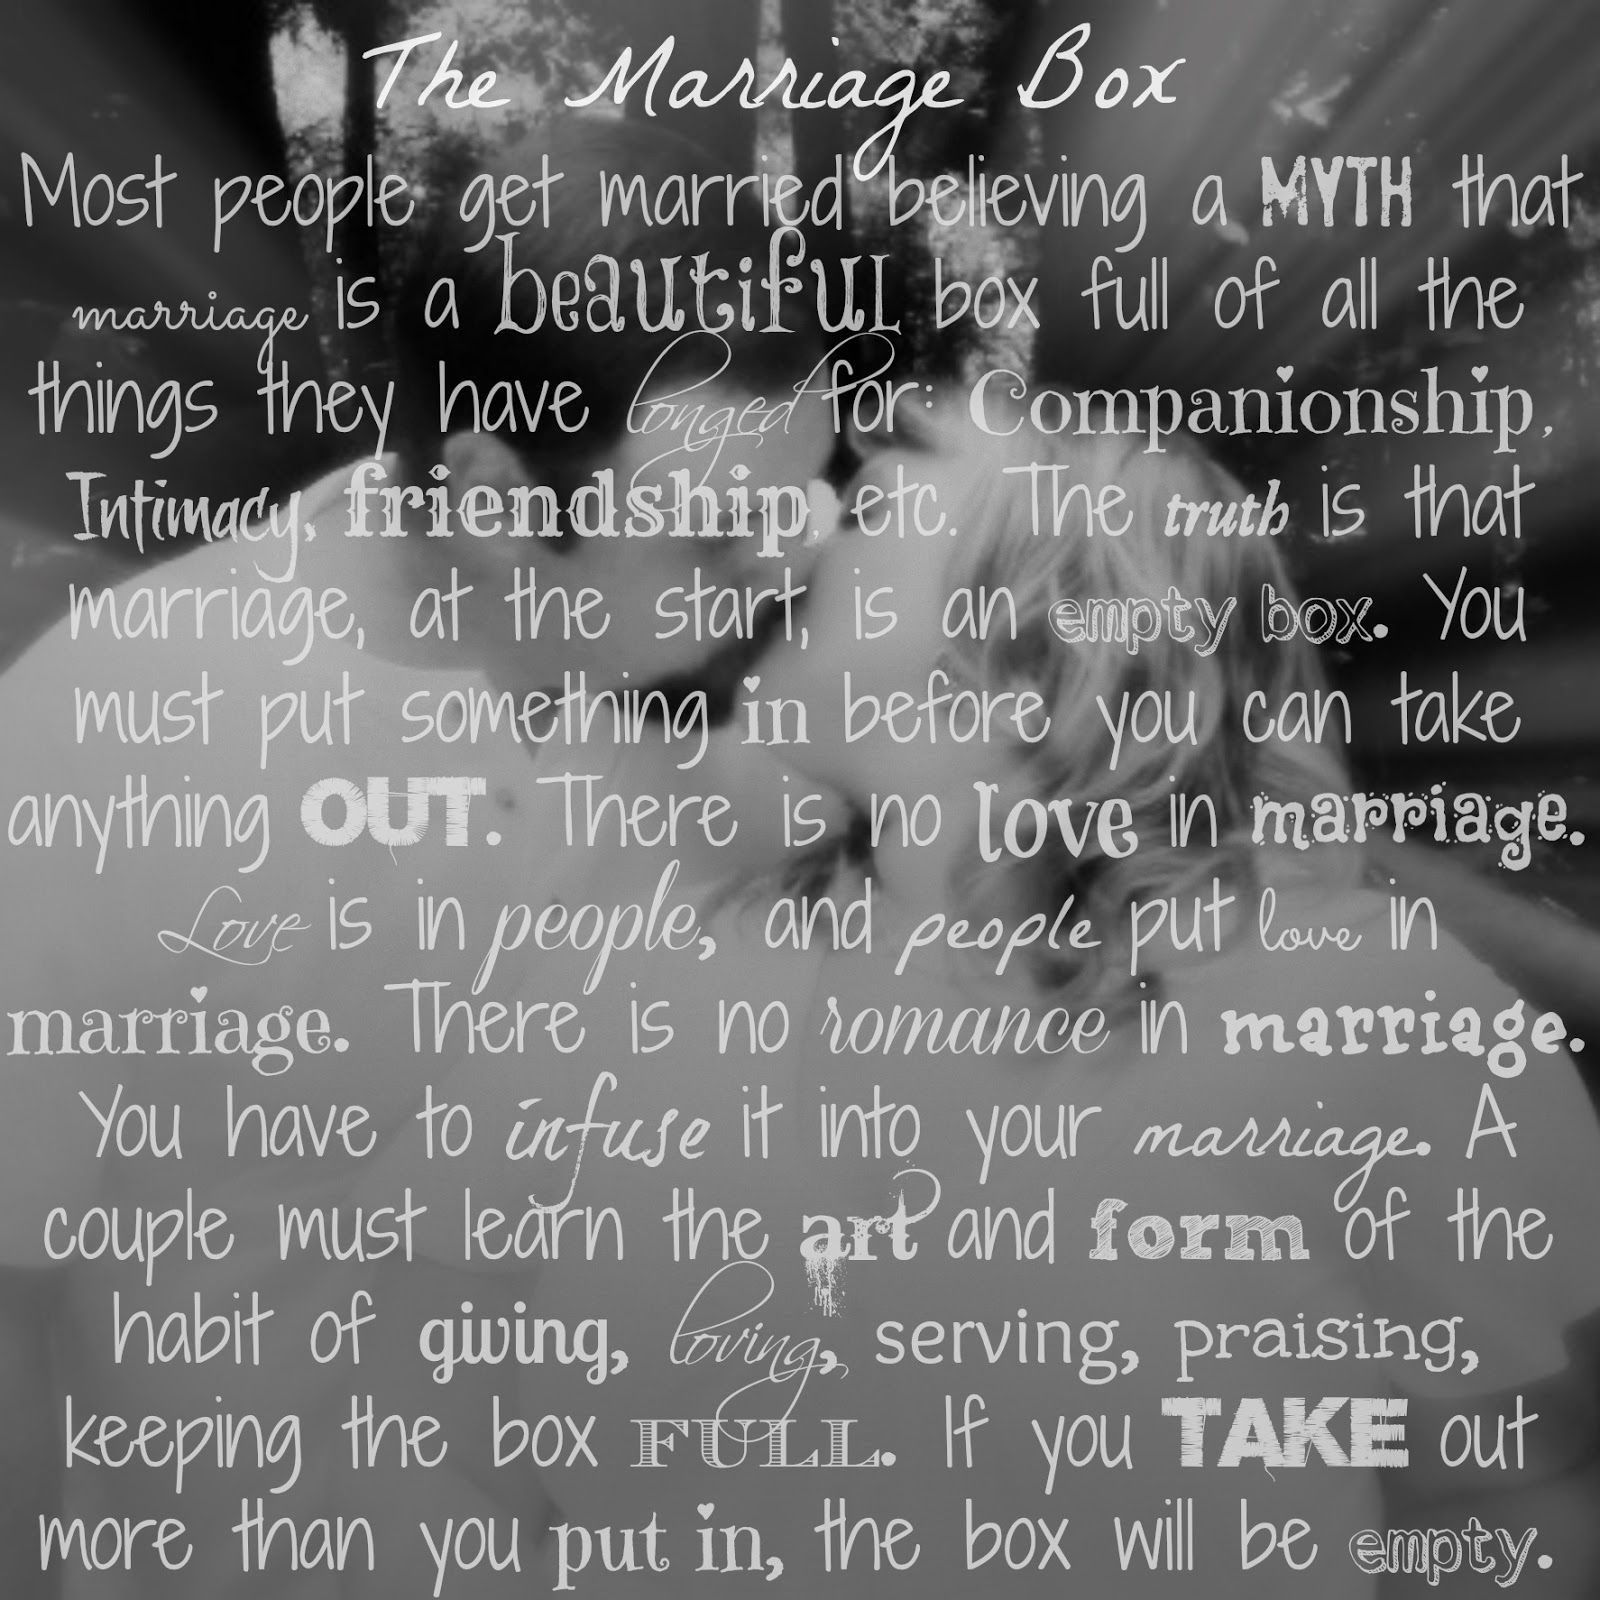 The Marriage Box...anyone can have a piece of paper that